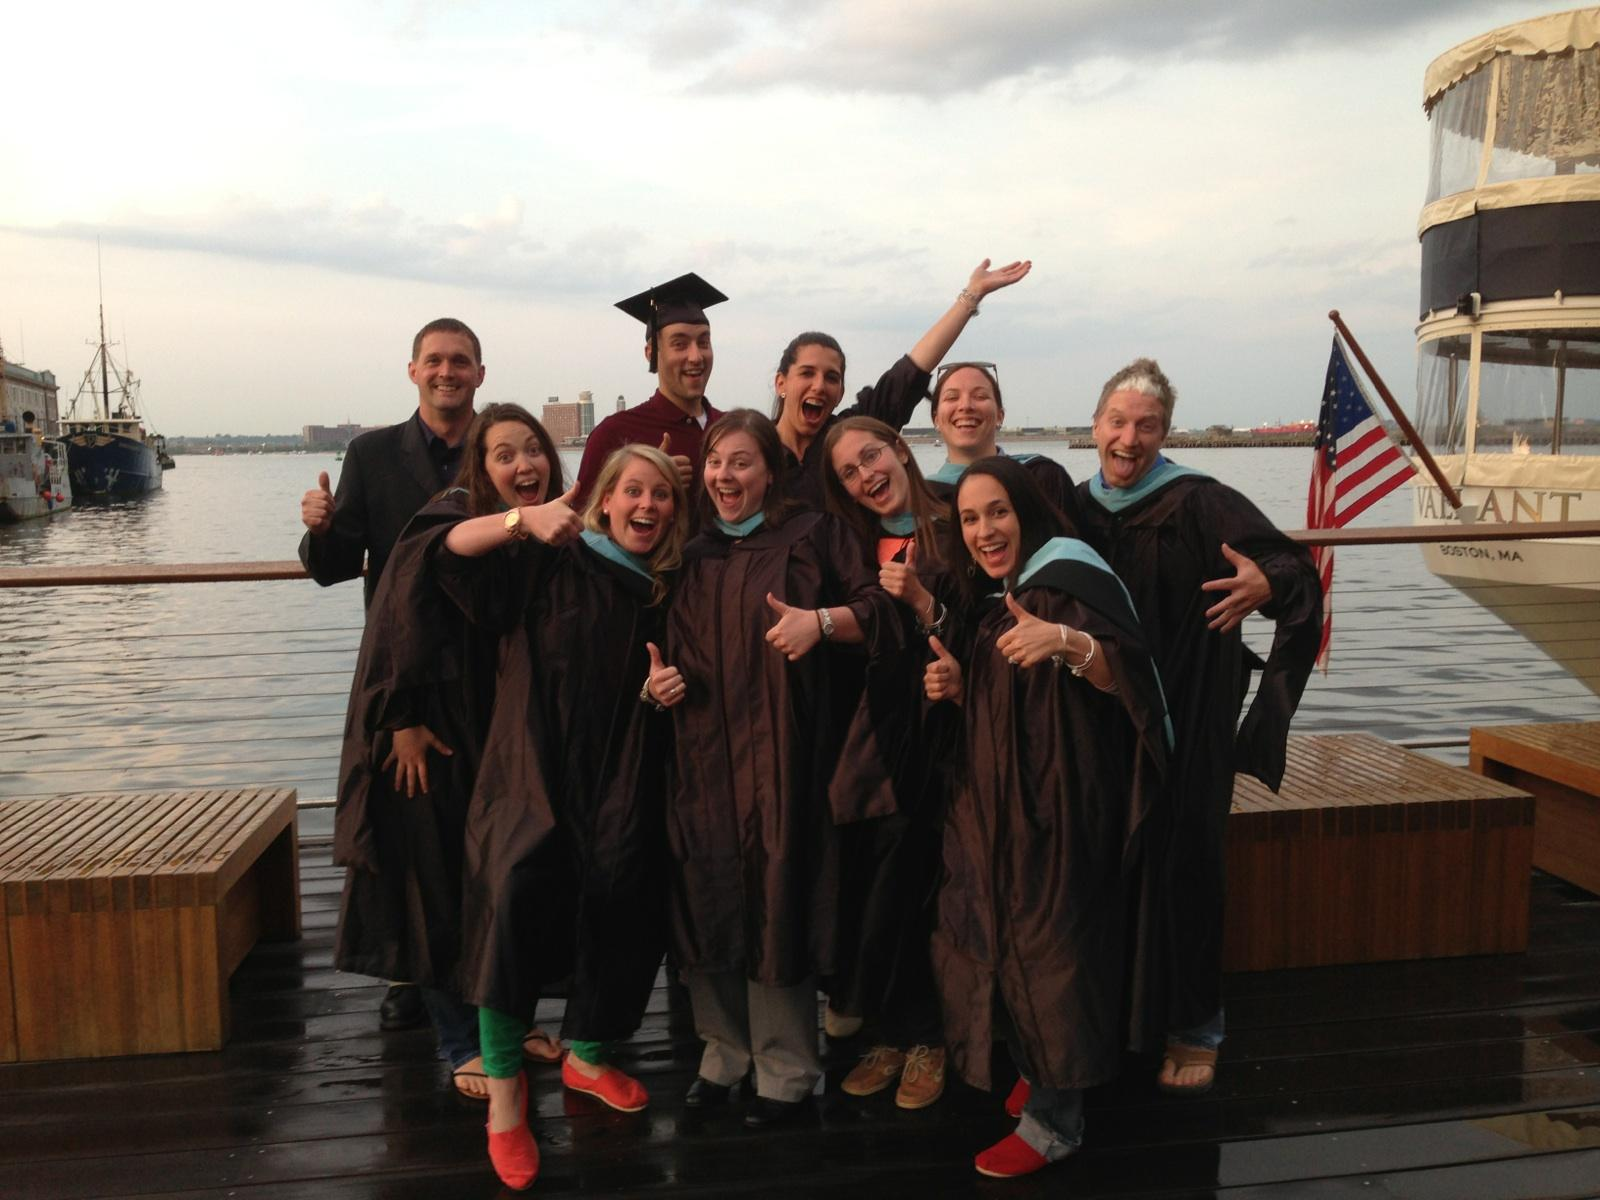 2013 graduates at Jerry Remy's, the 'fun' picture (thanks Jane!)